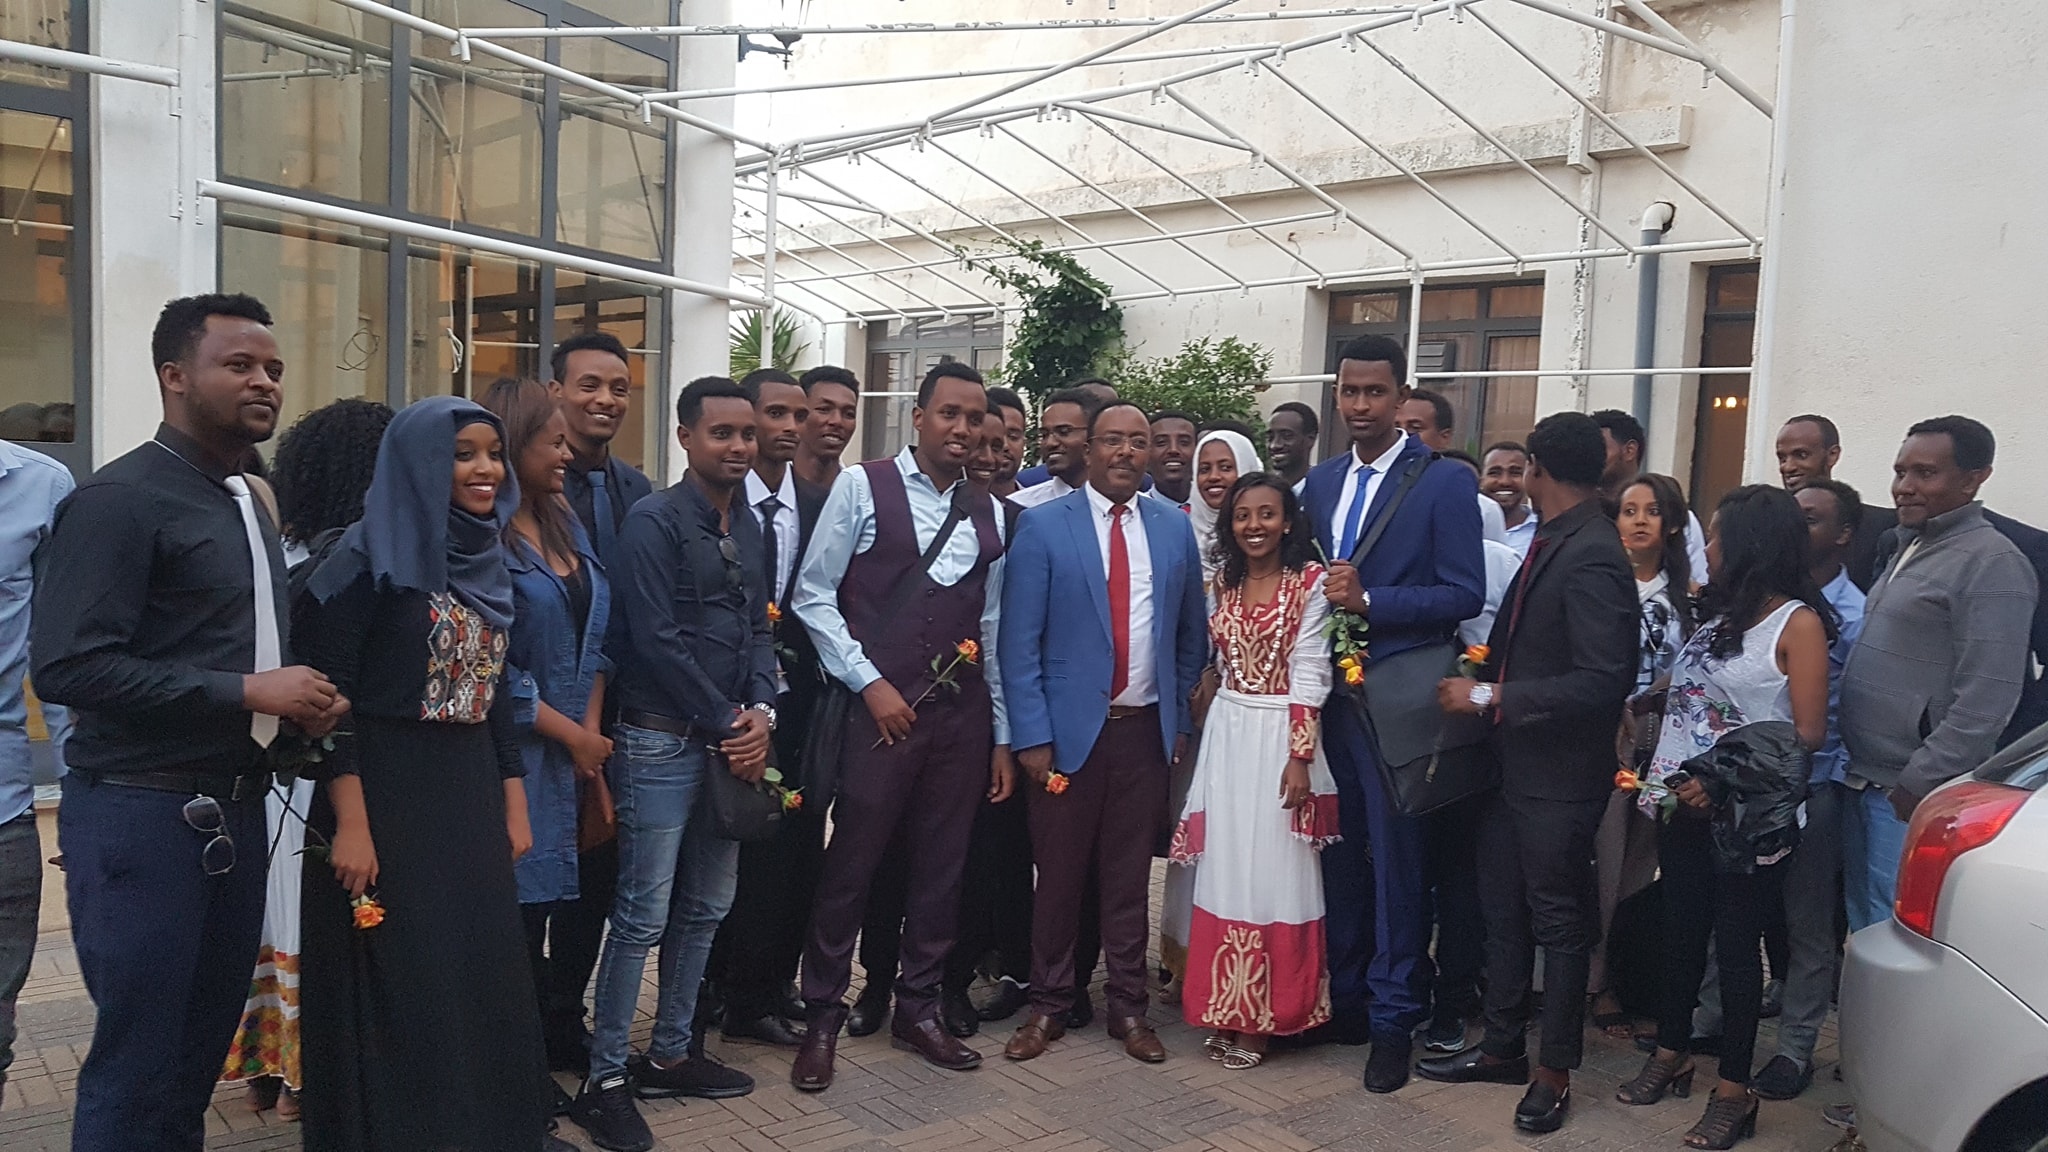 Farewell - Ethiopian Doctors who come to deliver a two-month voluntary service in Eritrea